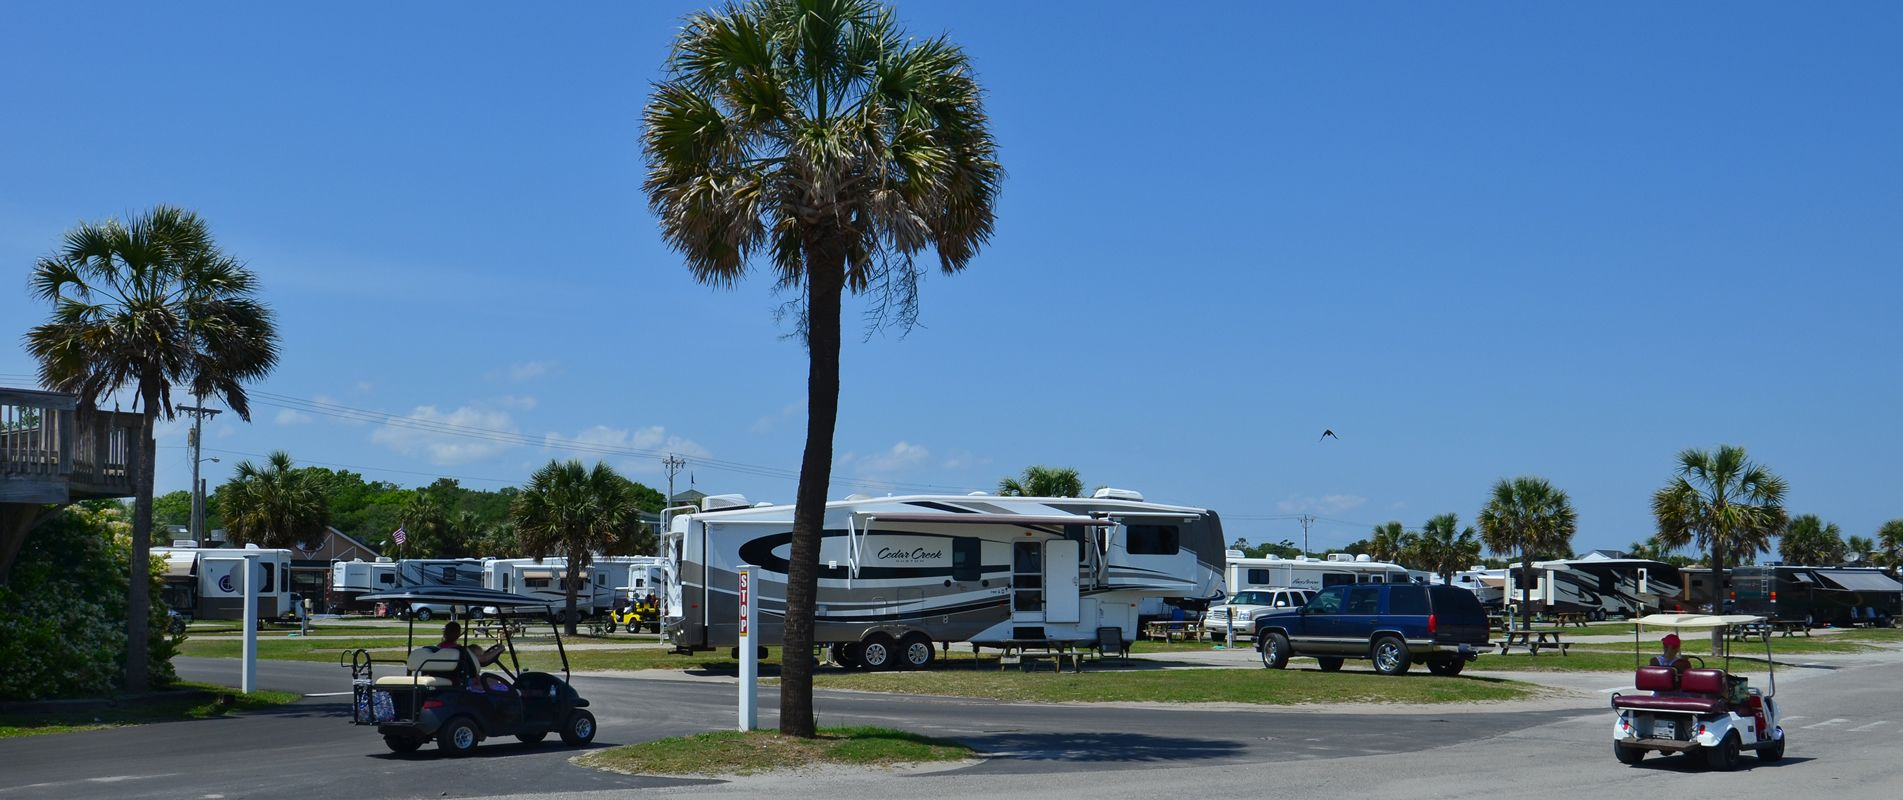 Campsite Rates Ocean Lakes Family Campground South Carolina Vacation Campsite Campground